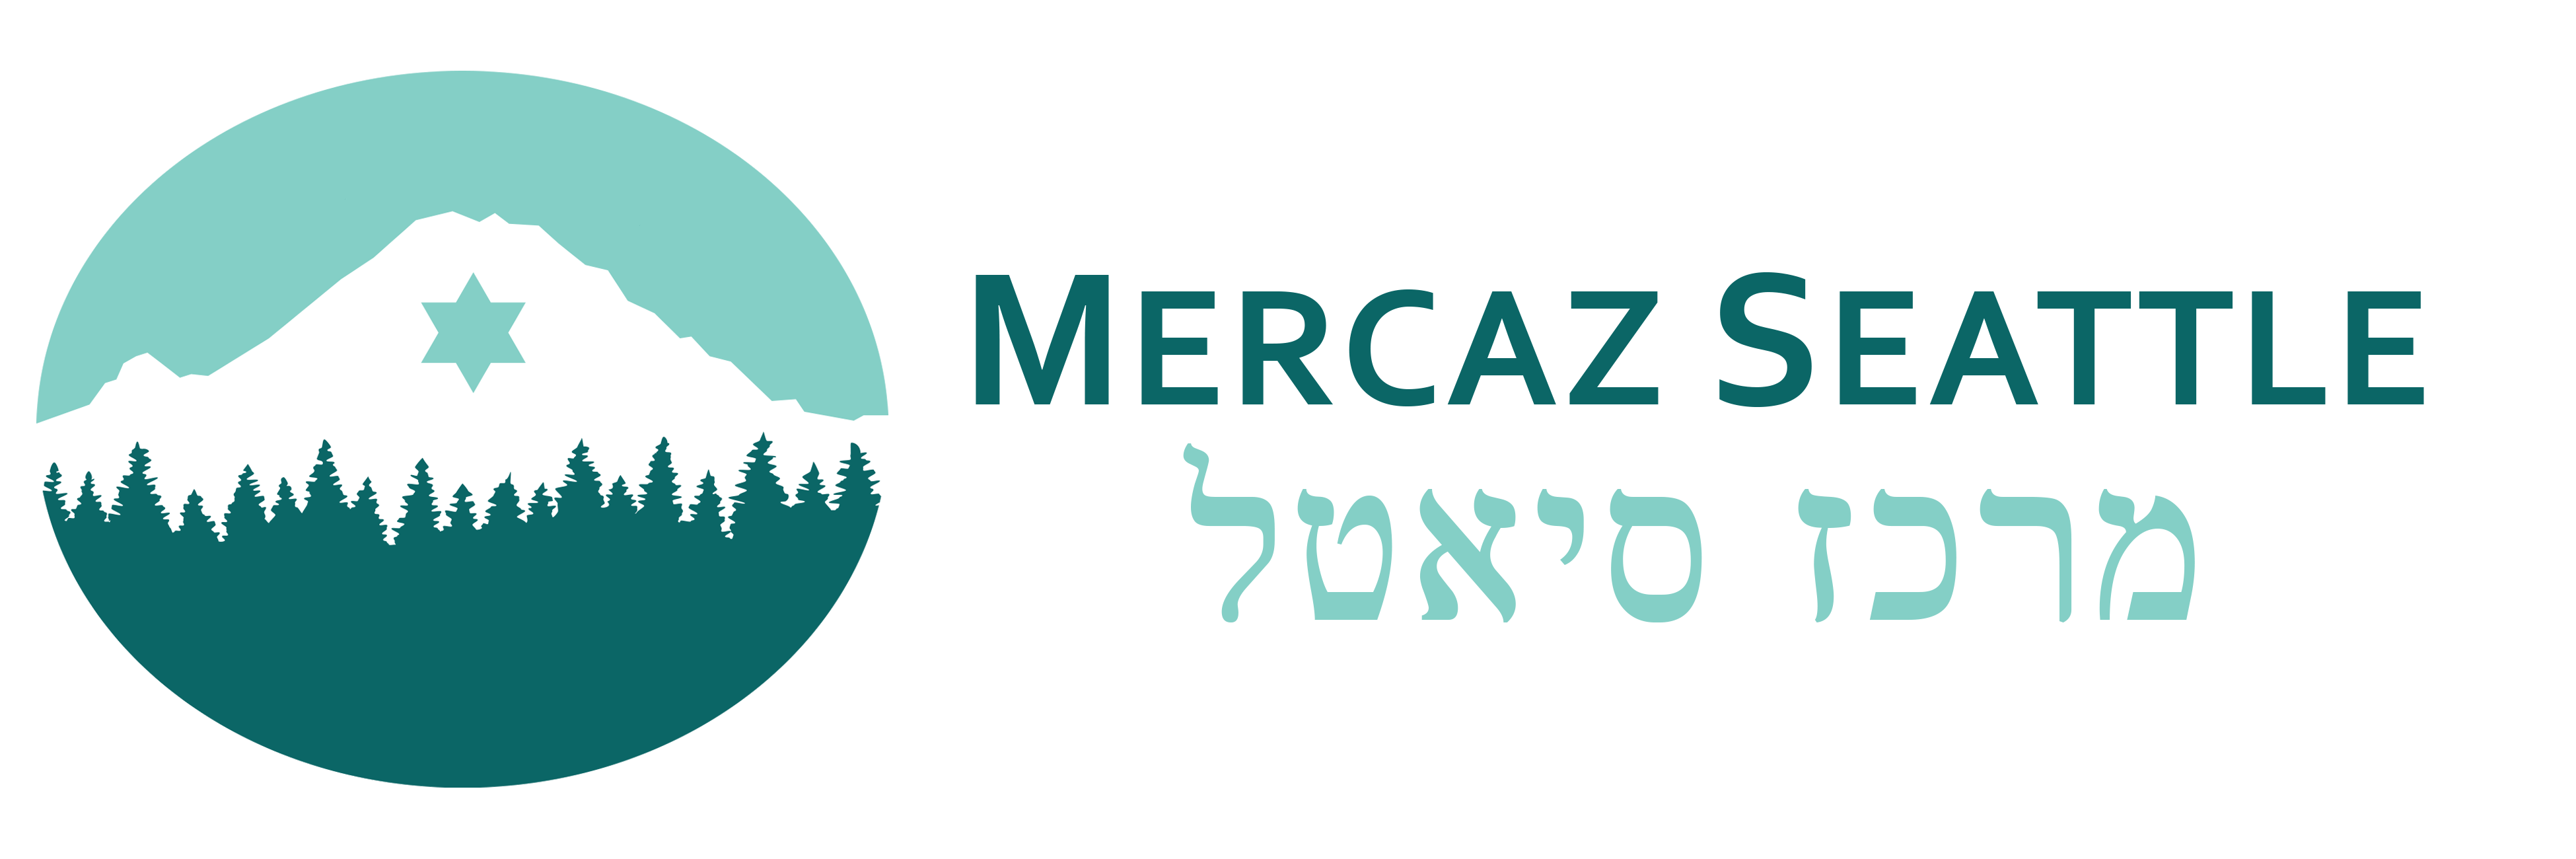 Mercaz Seattle